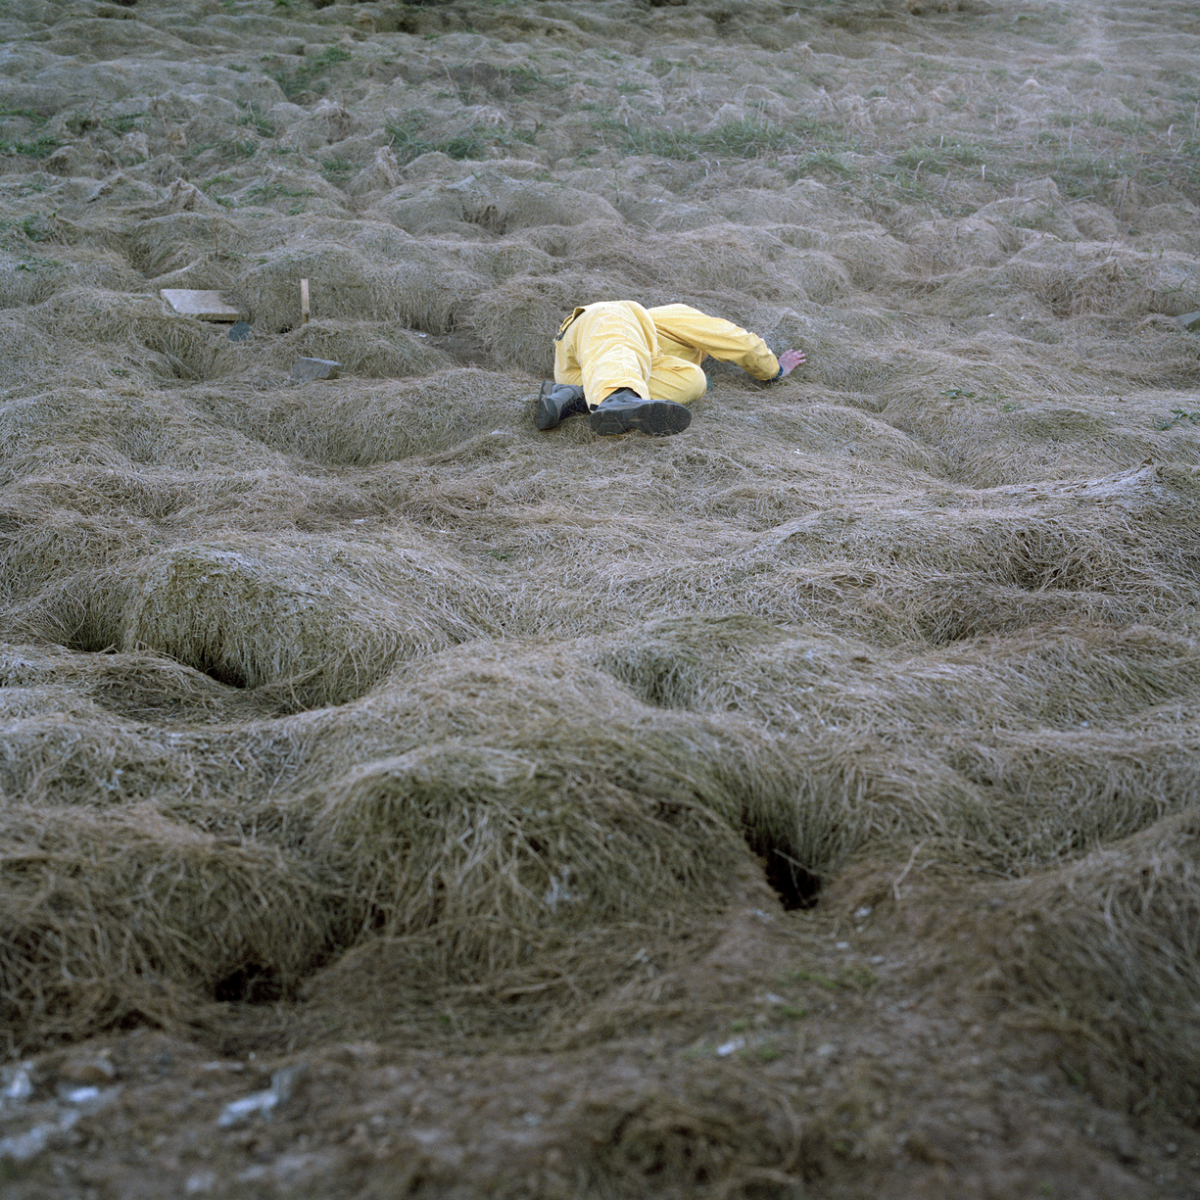 1 The Stranger in the Field, Wales, GBR, 2016